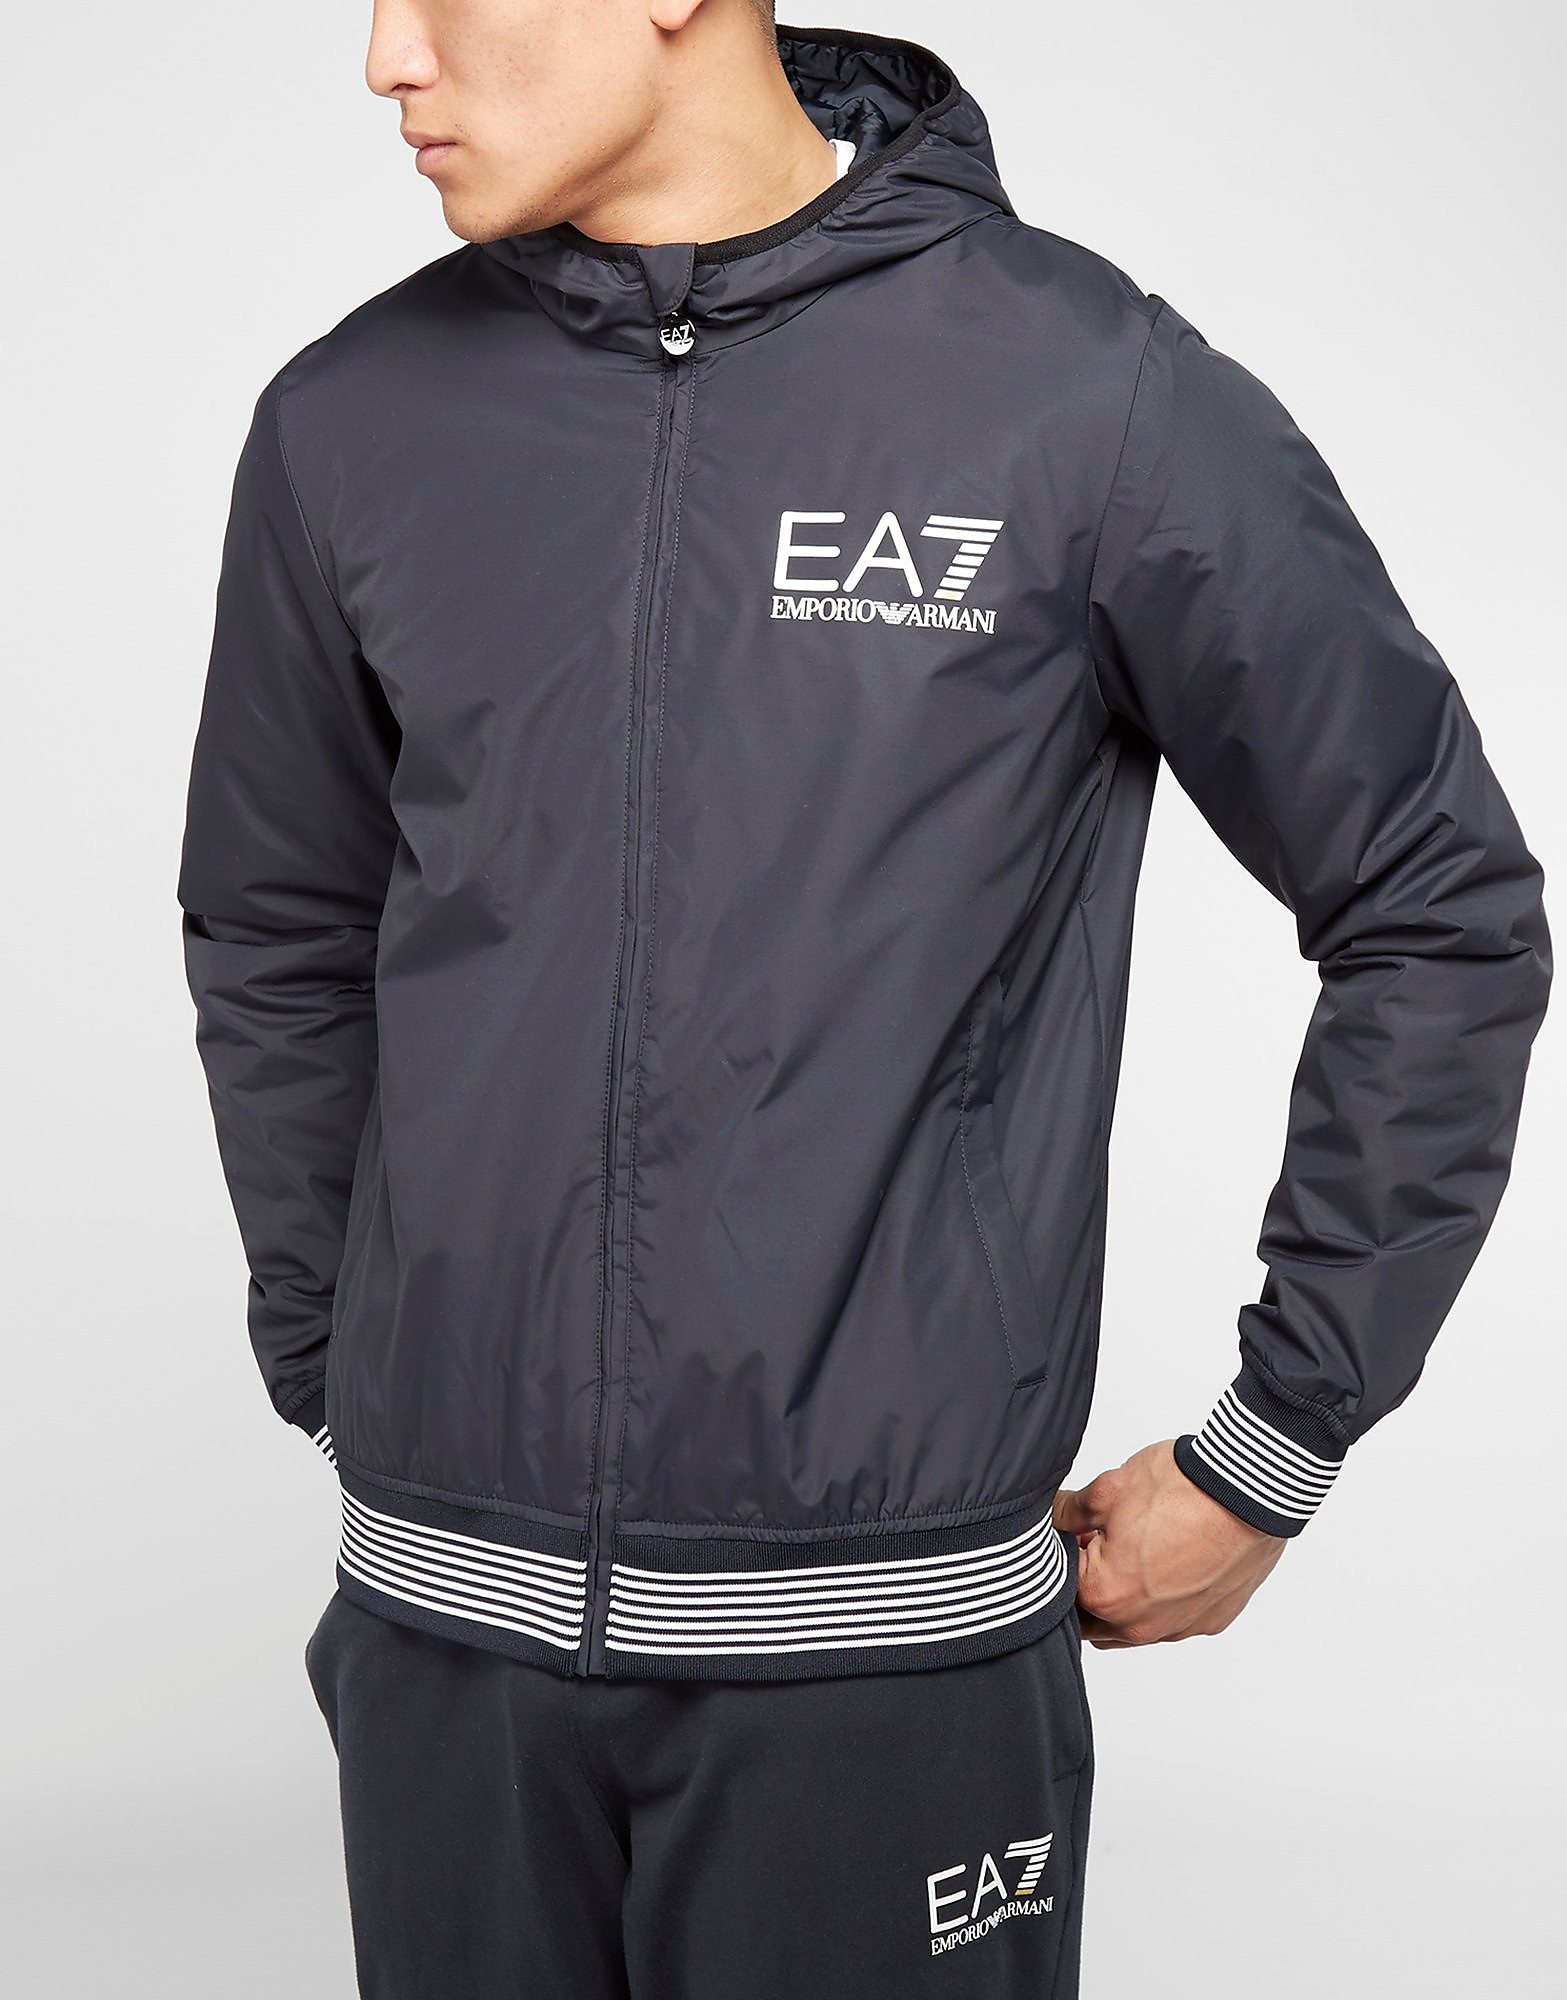 Emporio Armani EA7 Sailing Jacket - Exclusive